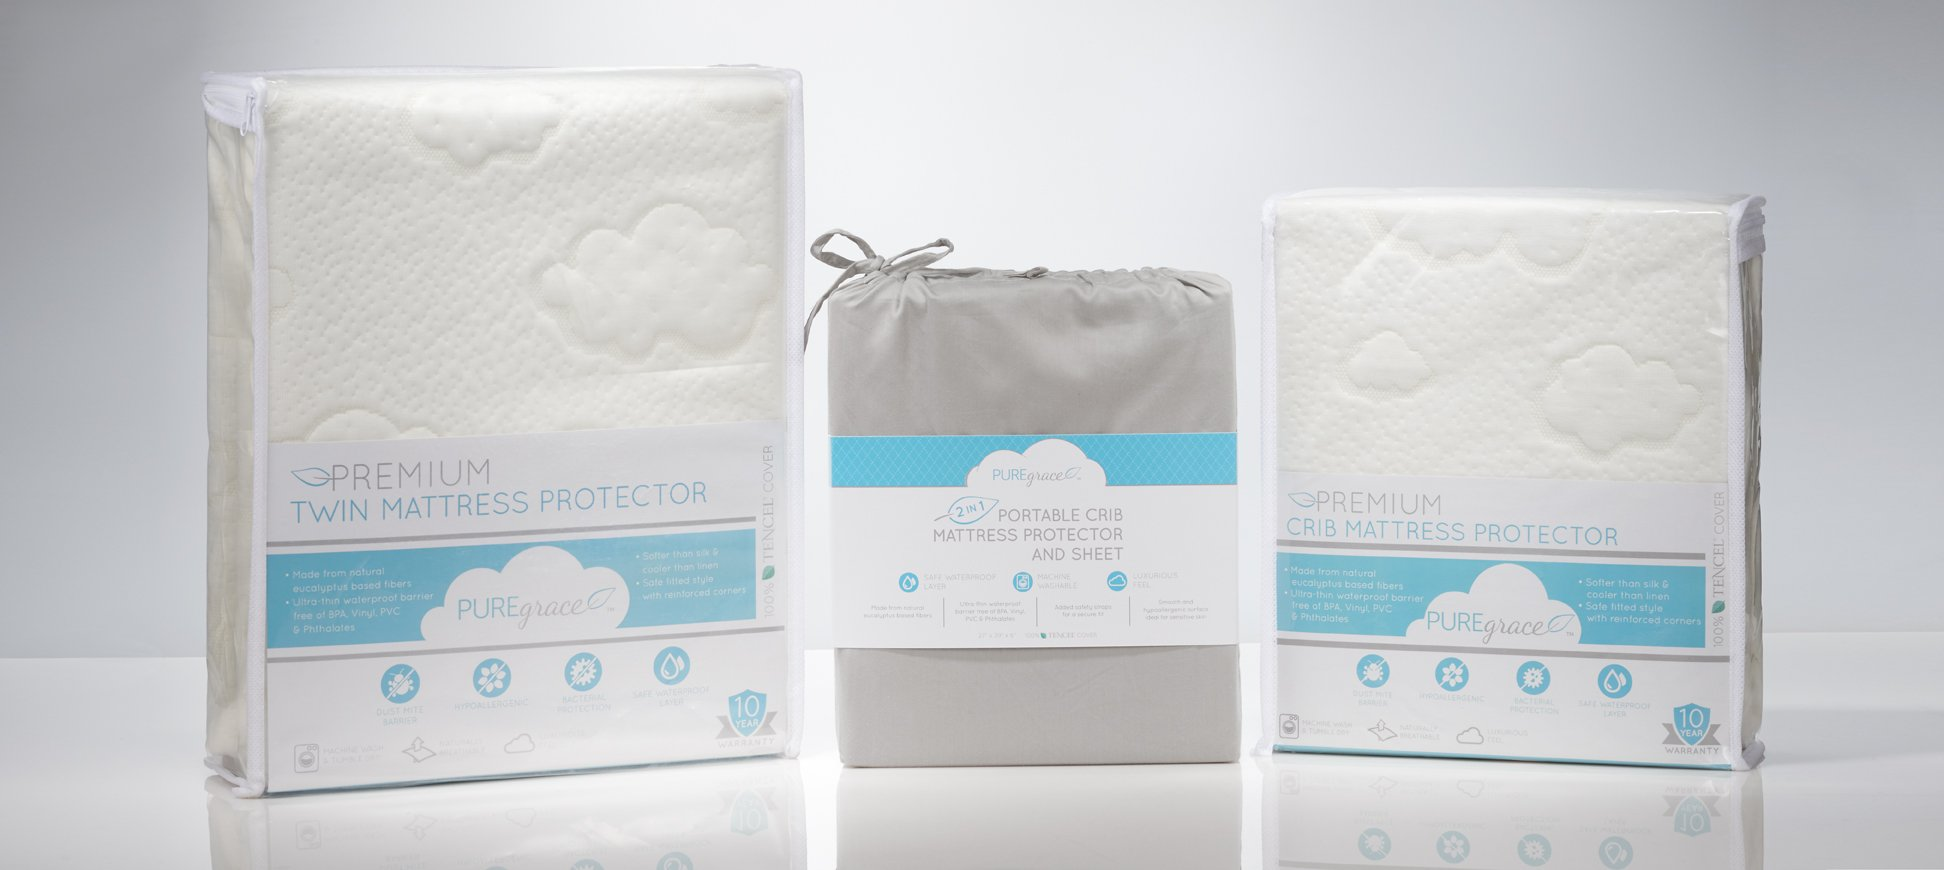 NEW from PUREgrace Playard Mattress SHEET and PROTECTOR in one - made with All Natural Hypoallergenic TENCEL, Waterproof Cover Protects and Fits Pack N Play or Mini Portable Crib Mattresses